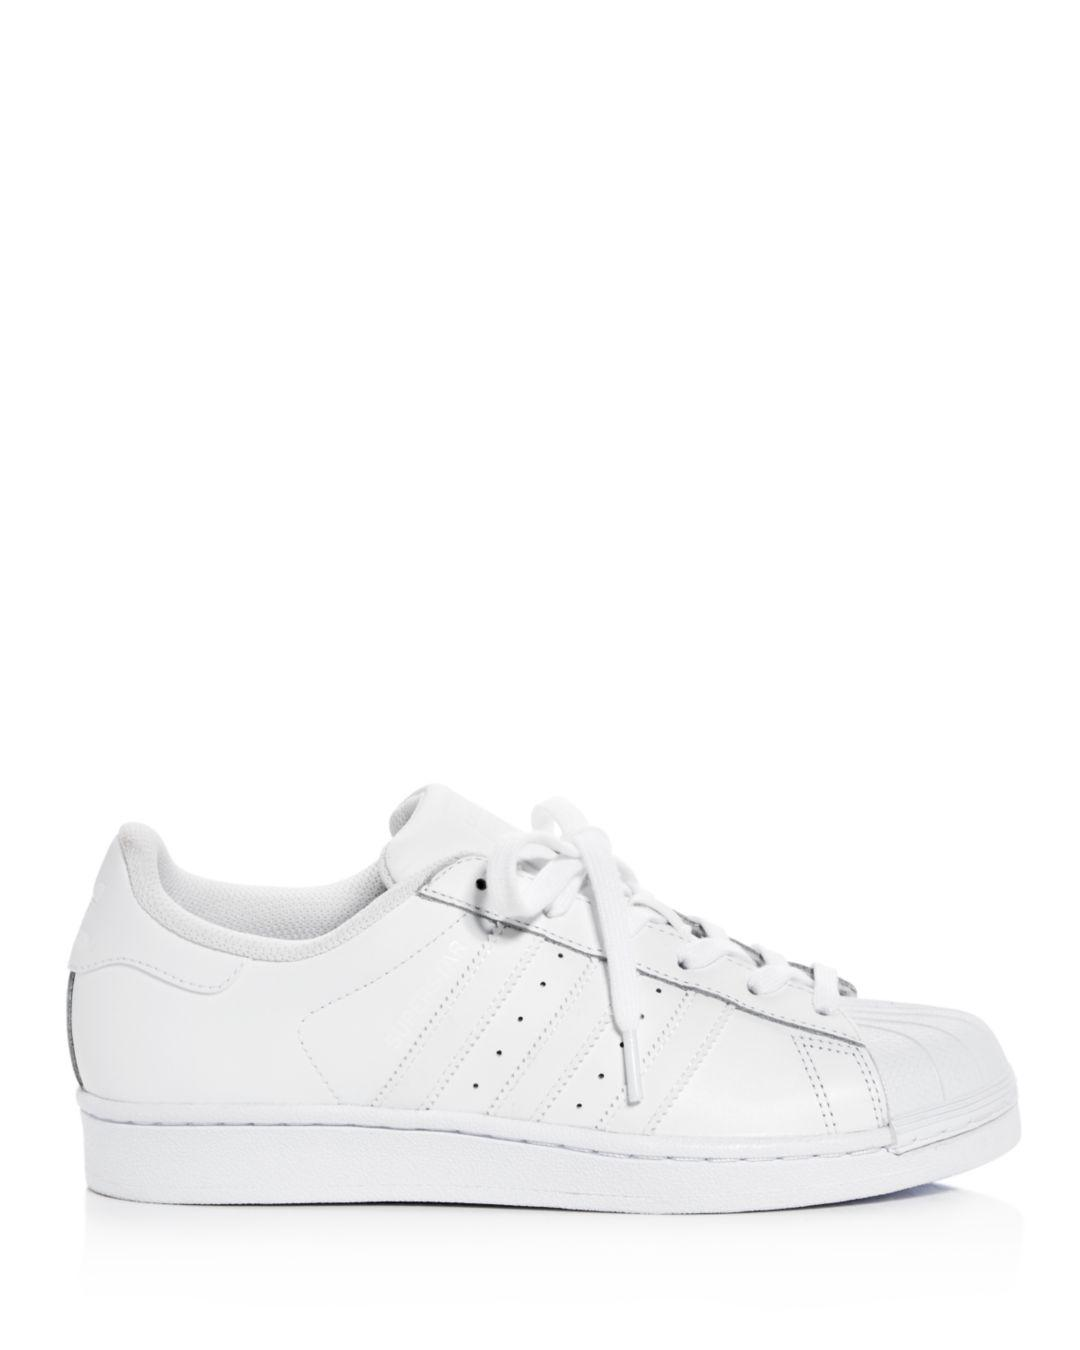 Lyst Adidas Sneakers Mujer Superstar Lace Up Sneakers Adidas in Blanco 96e49d